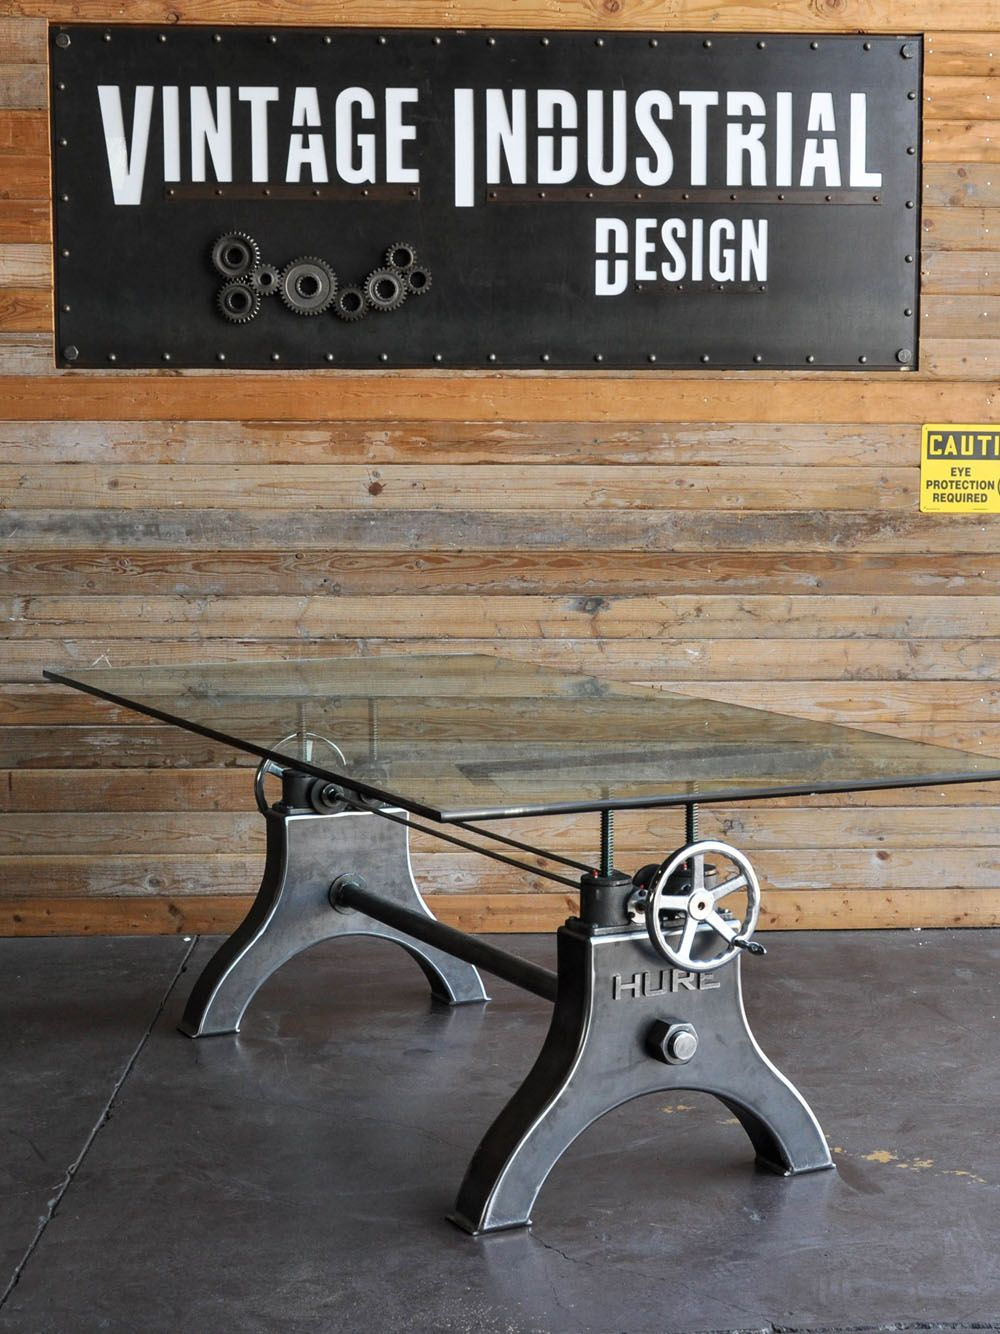 Hure conference table with faux crank vintage industrial furniture - Vintage Industrial Crank Table Designs Crank Up Your Decor Http Freshome